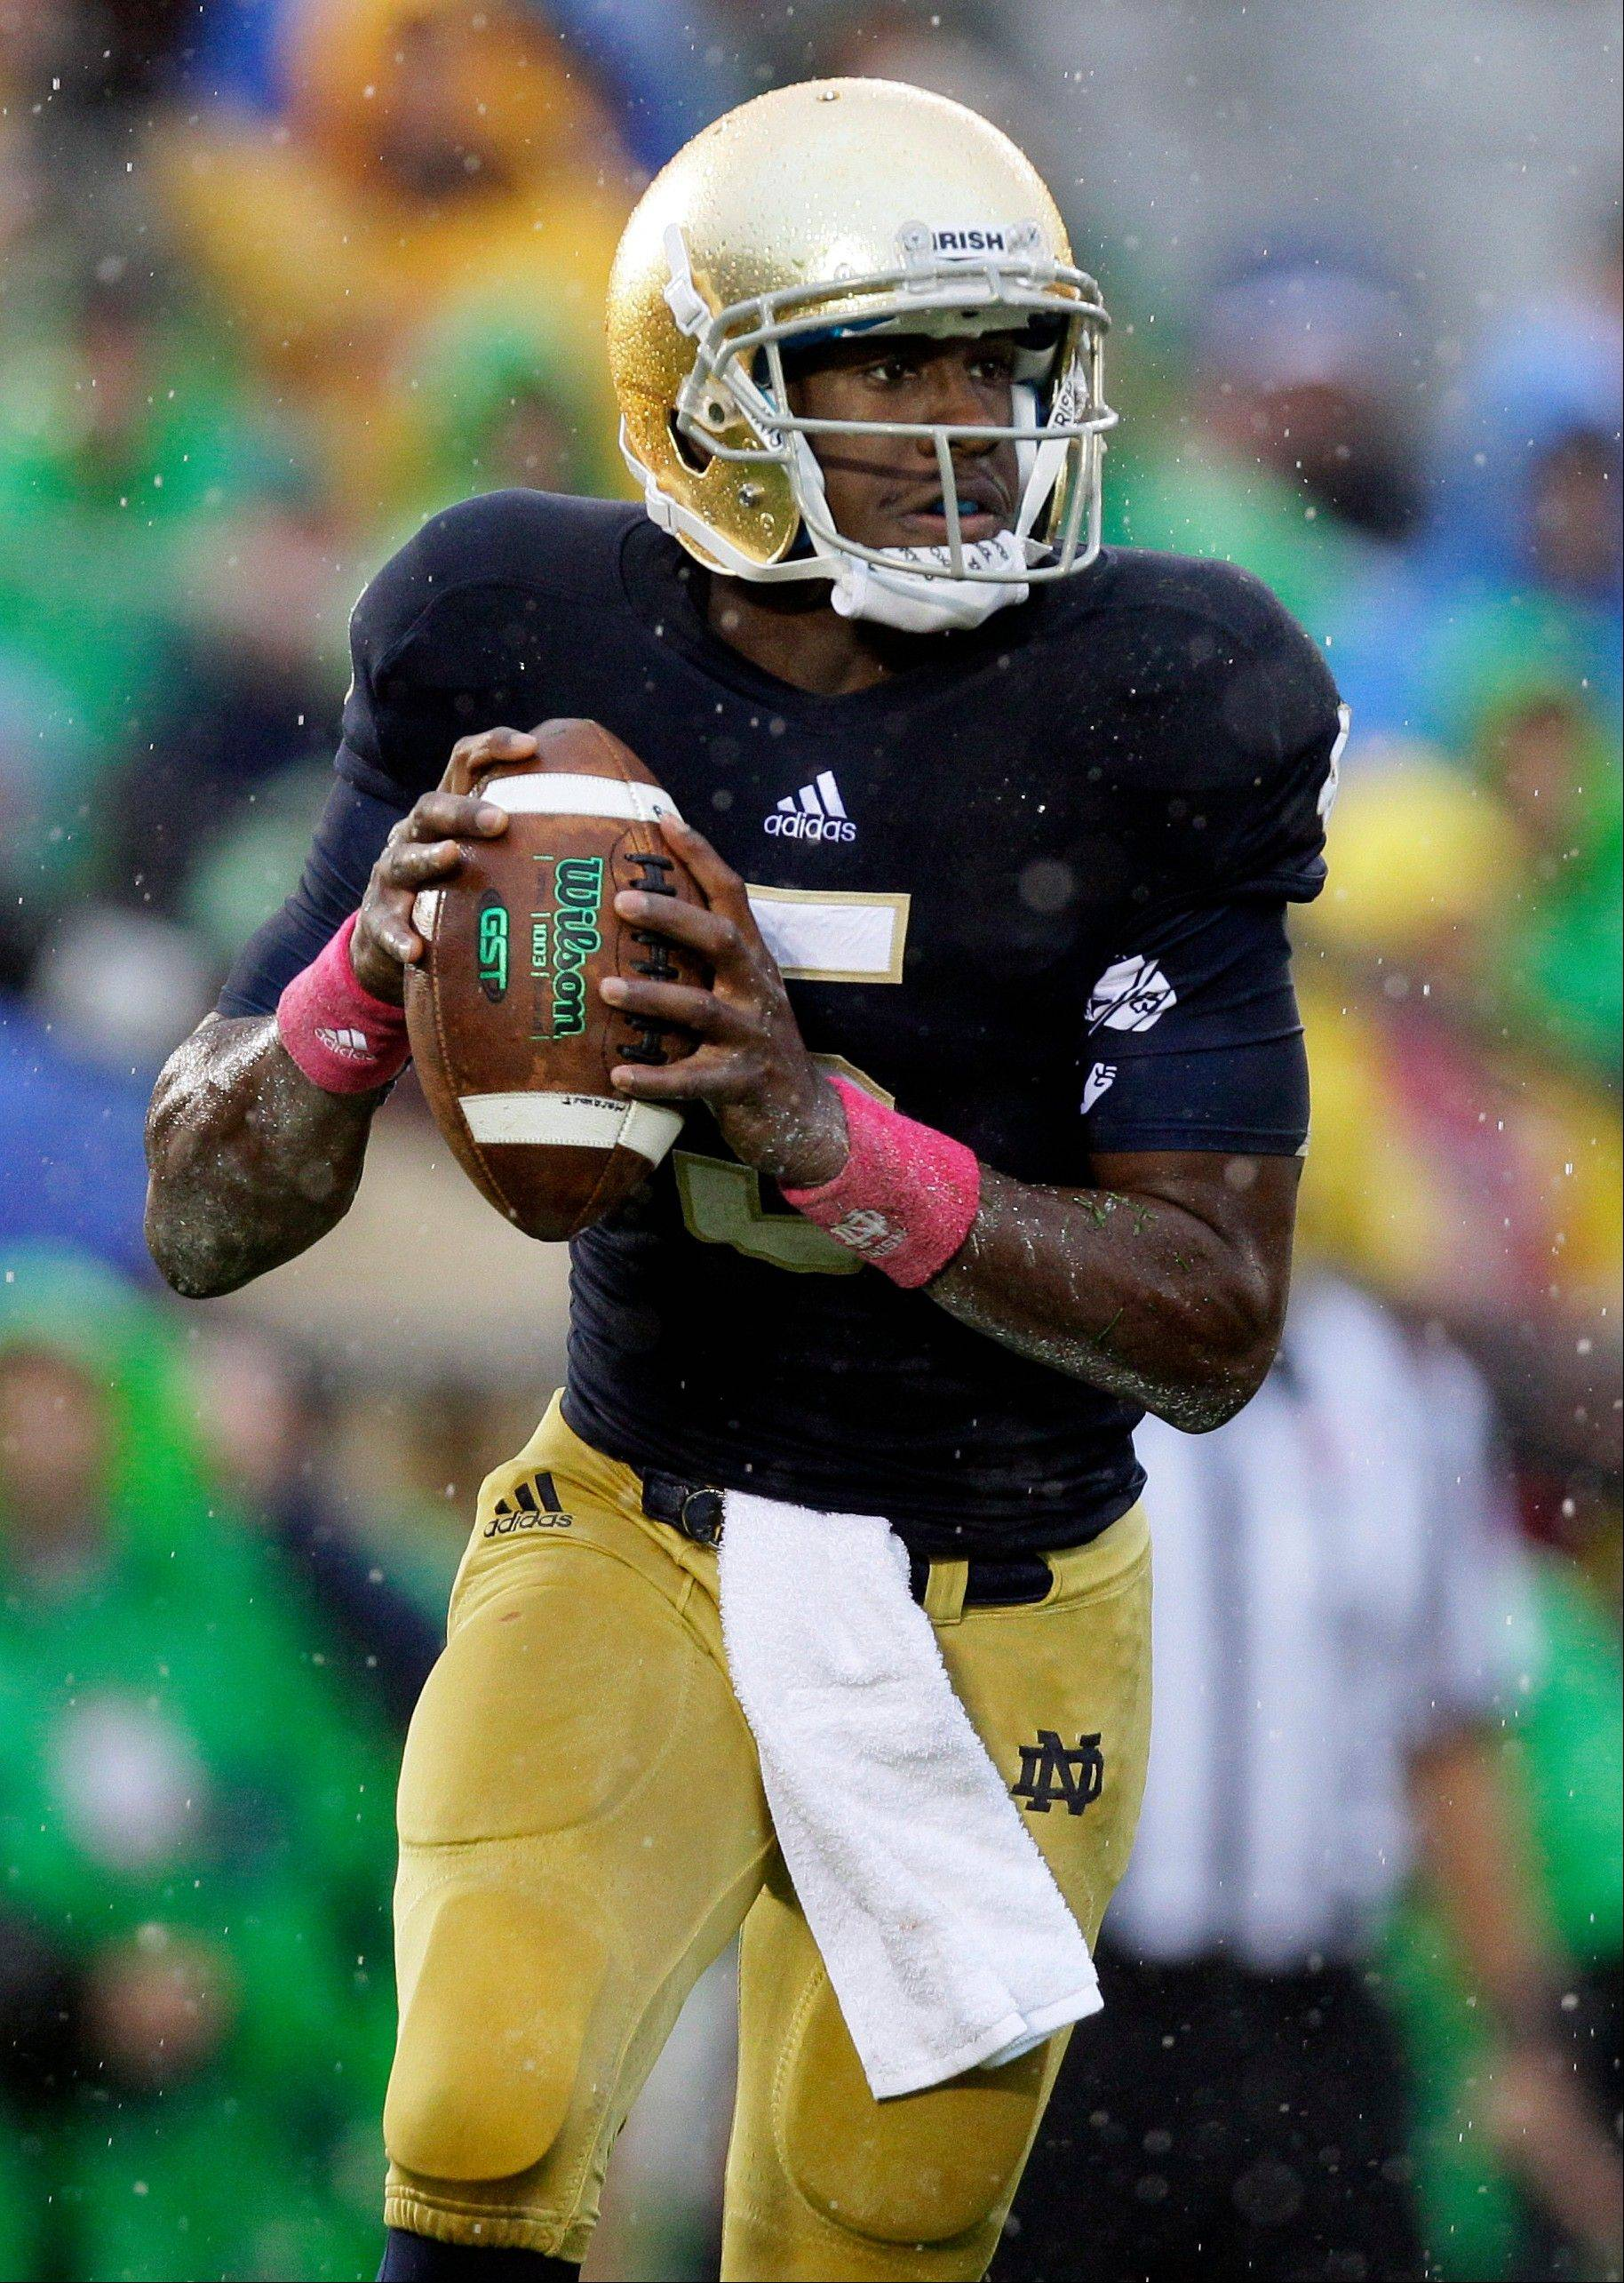 Notre Dame quarterback Everett Golson, who suffered a concussion against Stanford on Saturday, was not cleared to returned to practice Tuesday, school officials said.